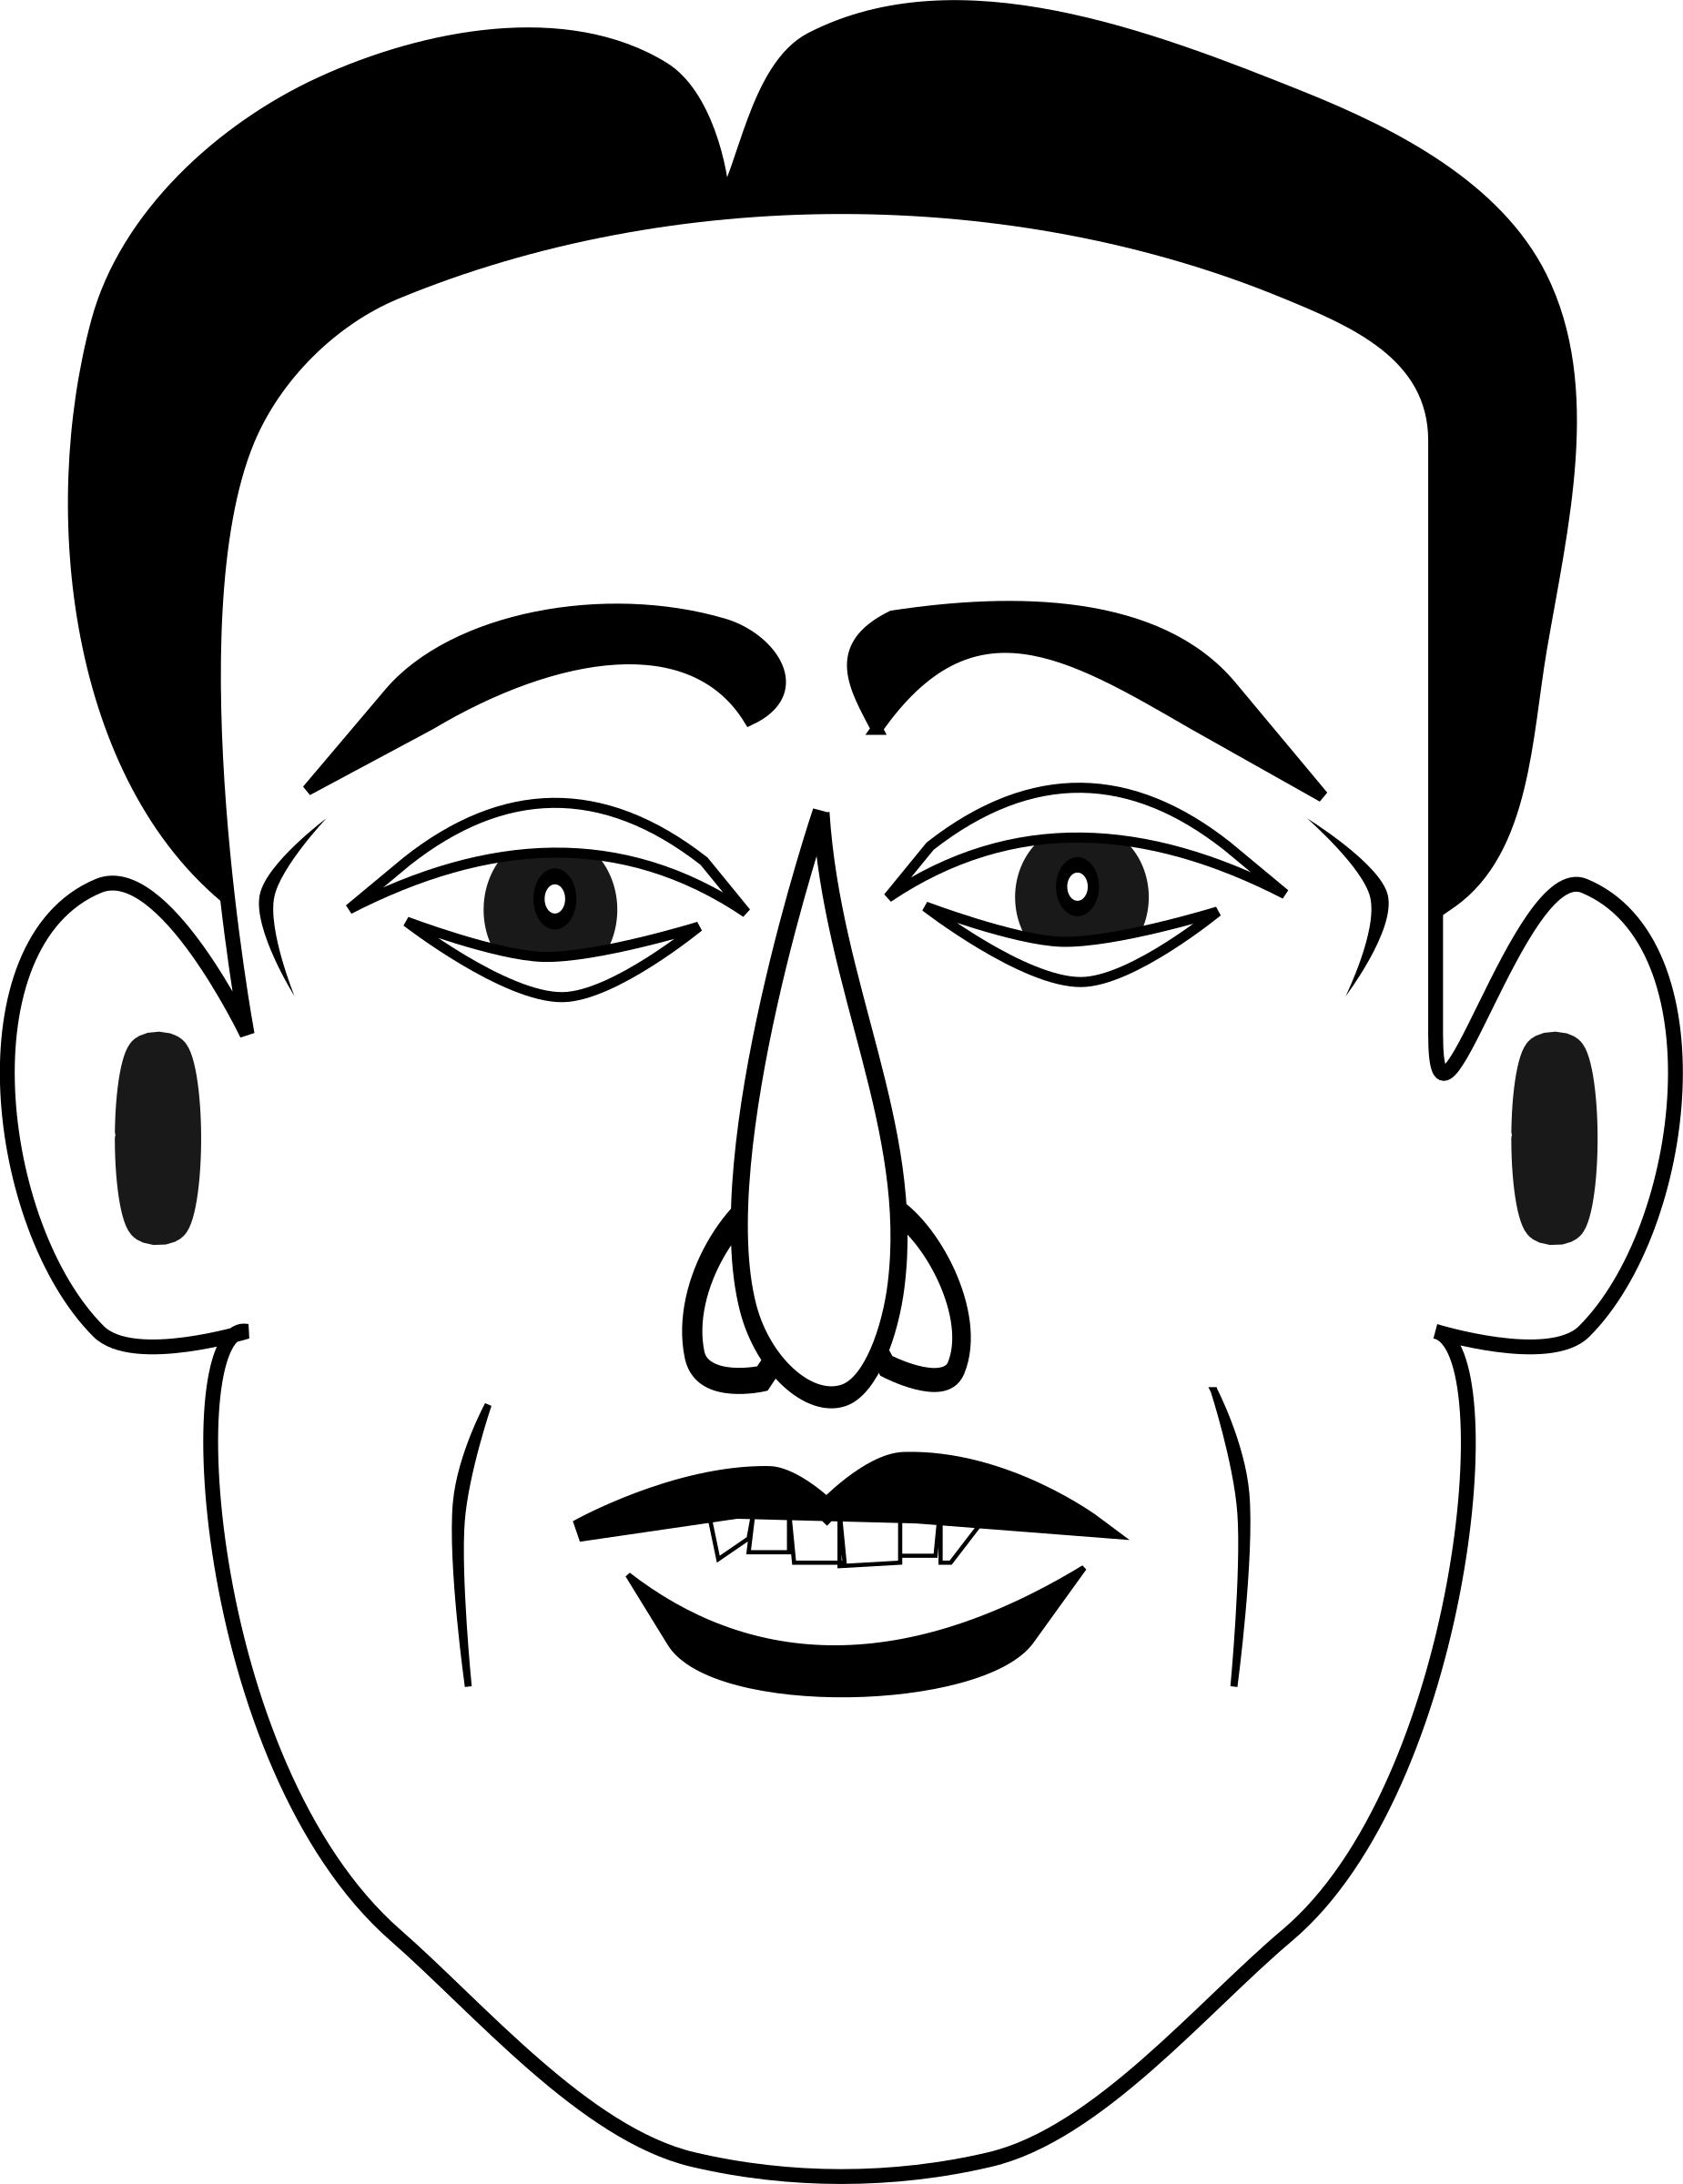 picture royalty free library Emotion drawing. Clipart happy big image